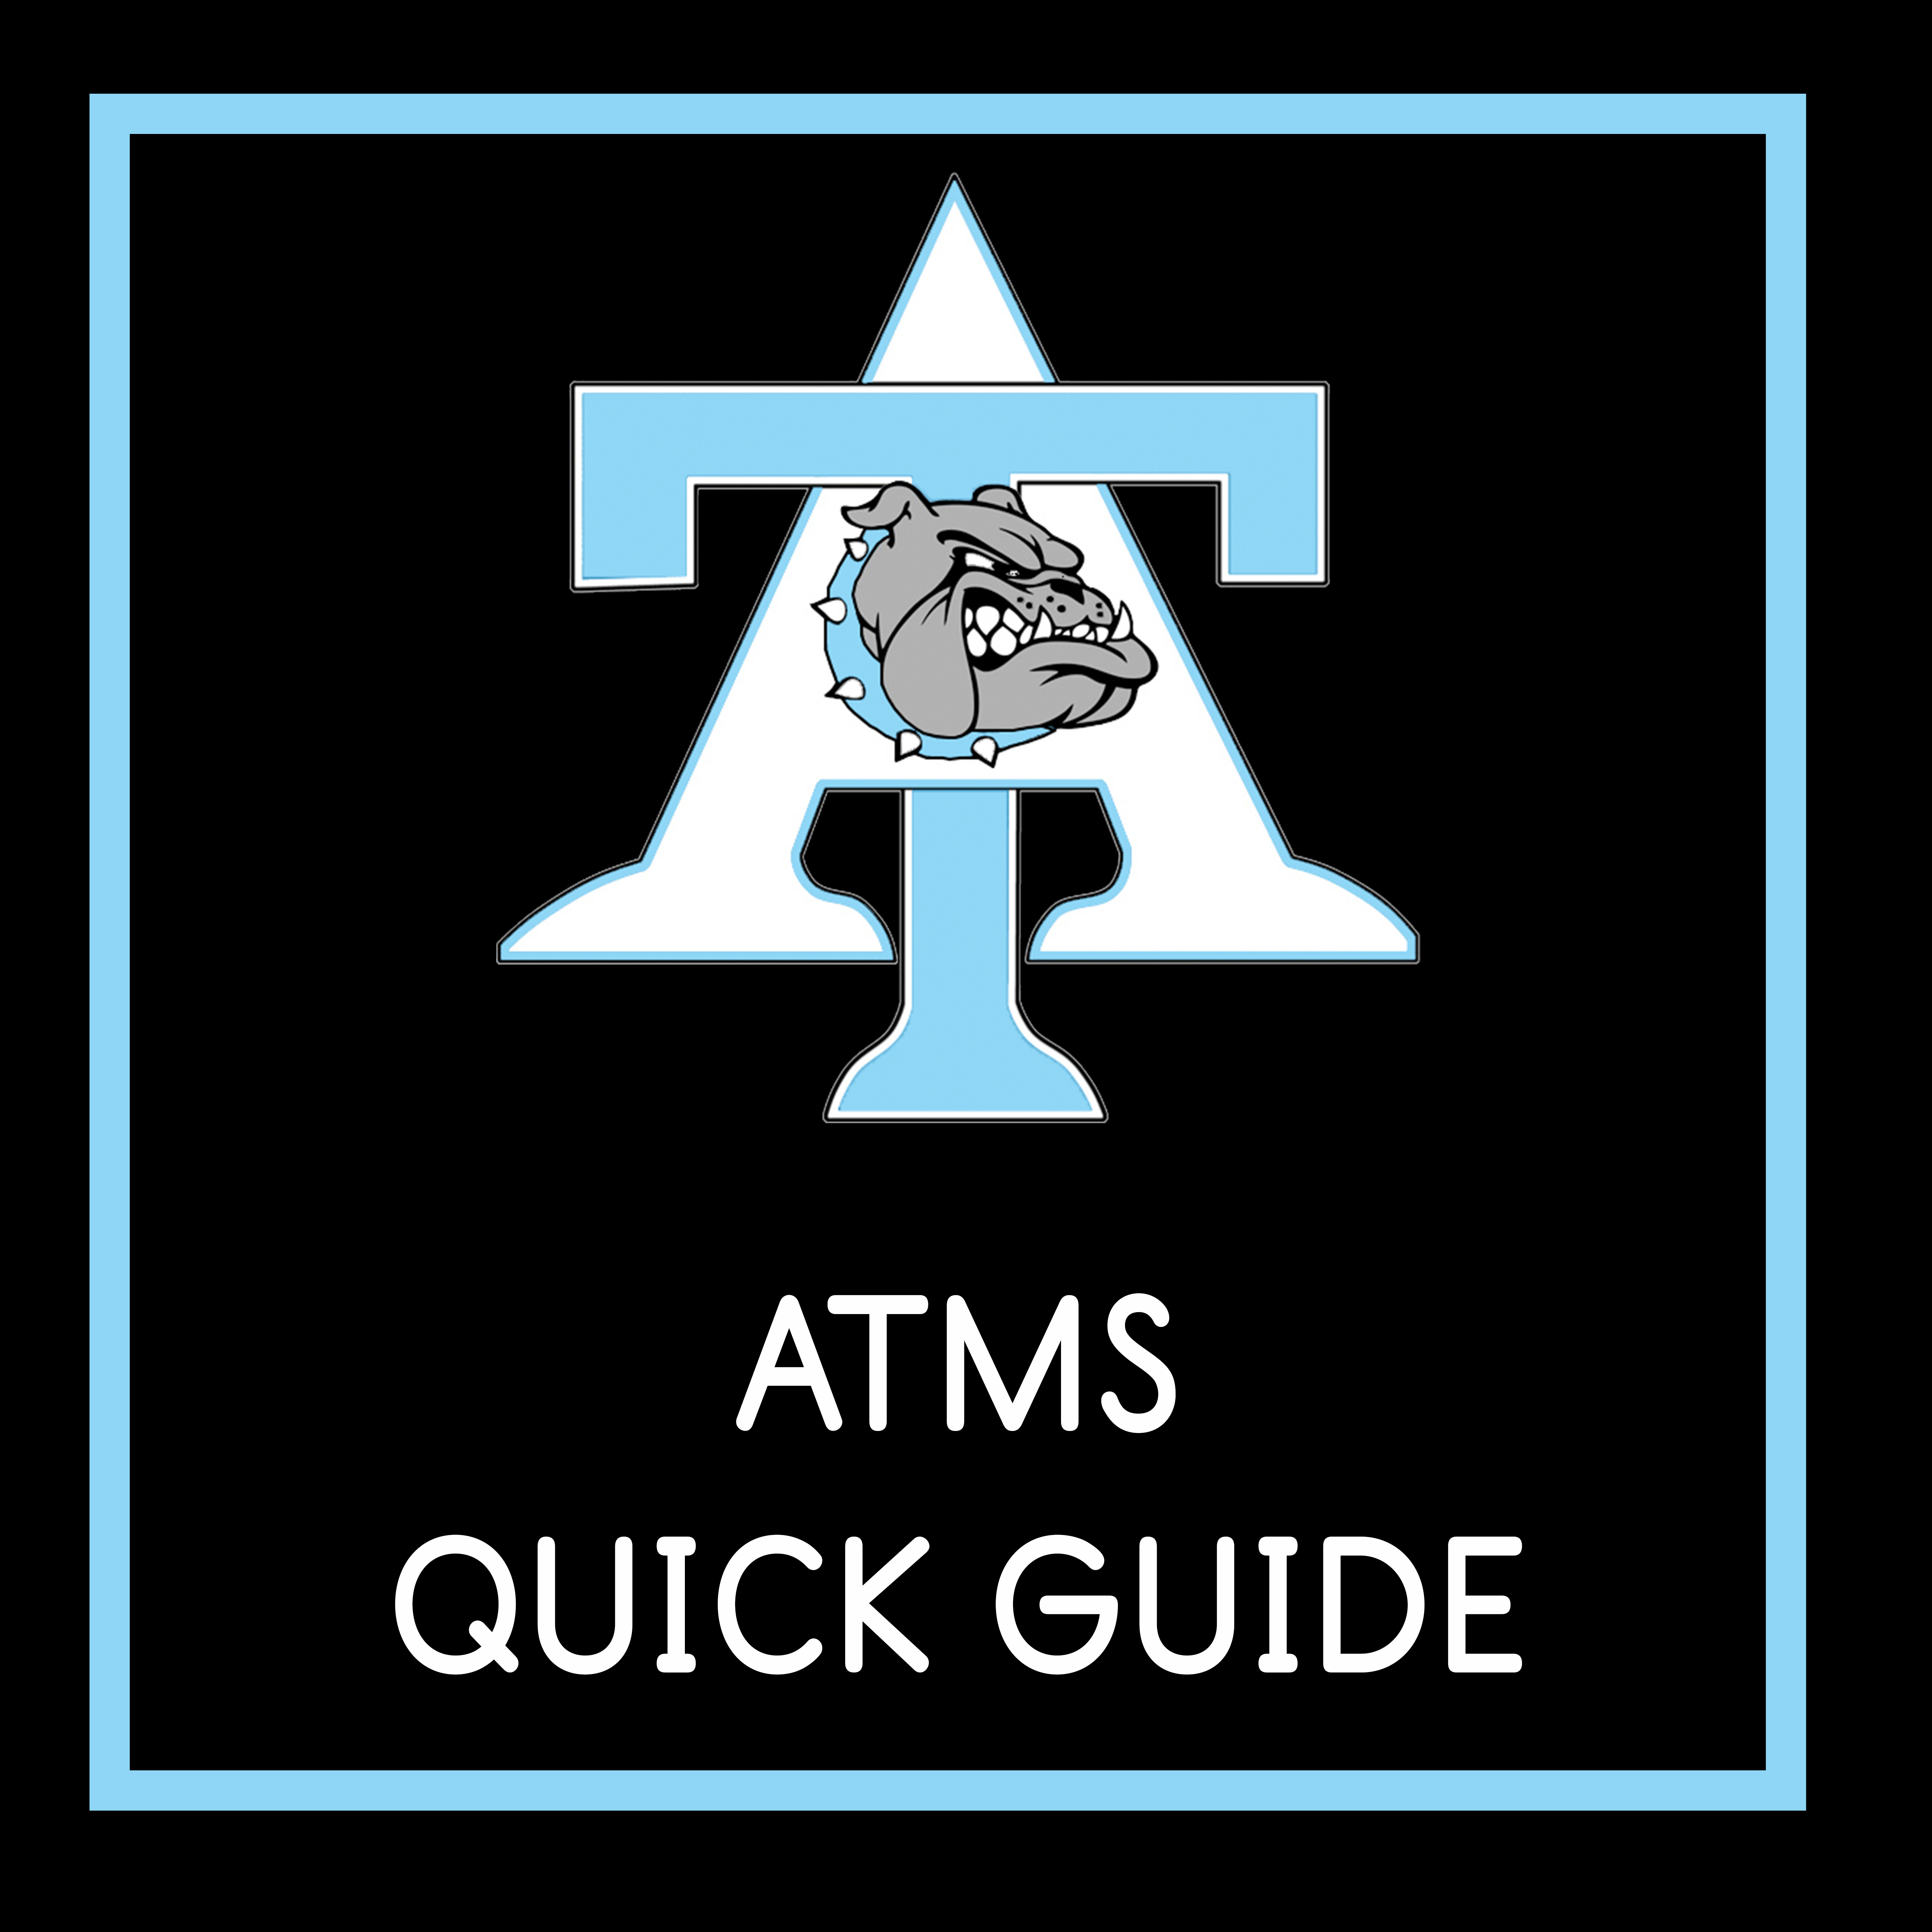 ATMS Quick Guide Icon